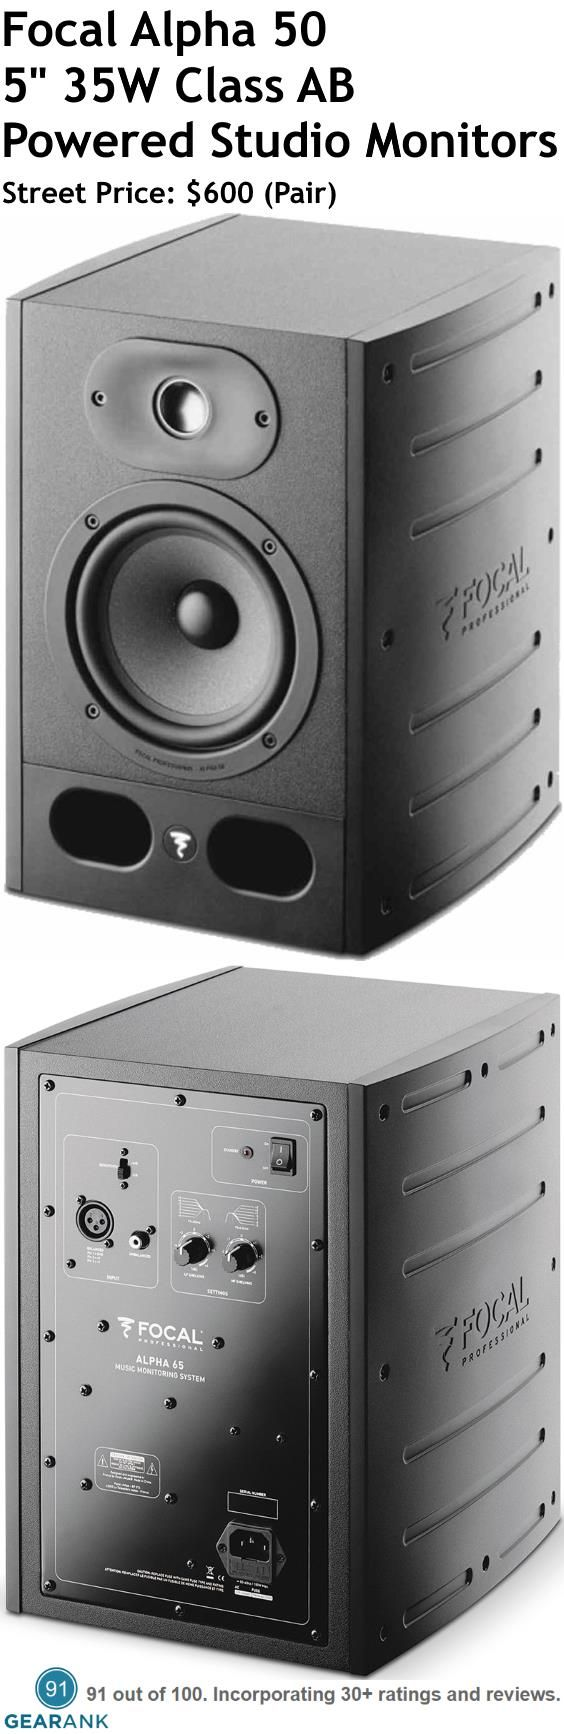 "Focal Alpha 50 5"" 35W Class AB Powered Studio Monitors. Features:5"" polyglass cone woofer 